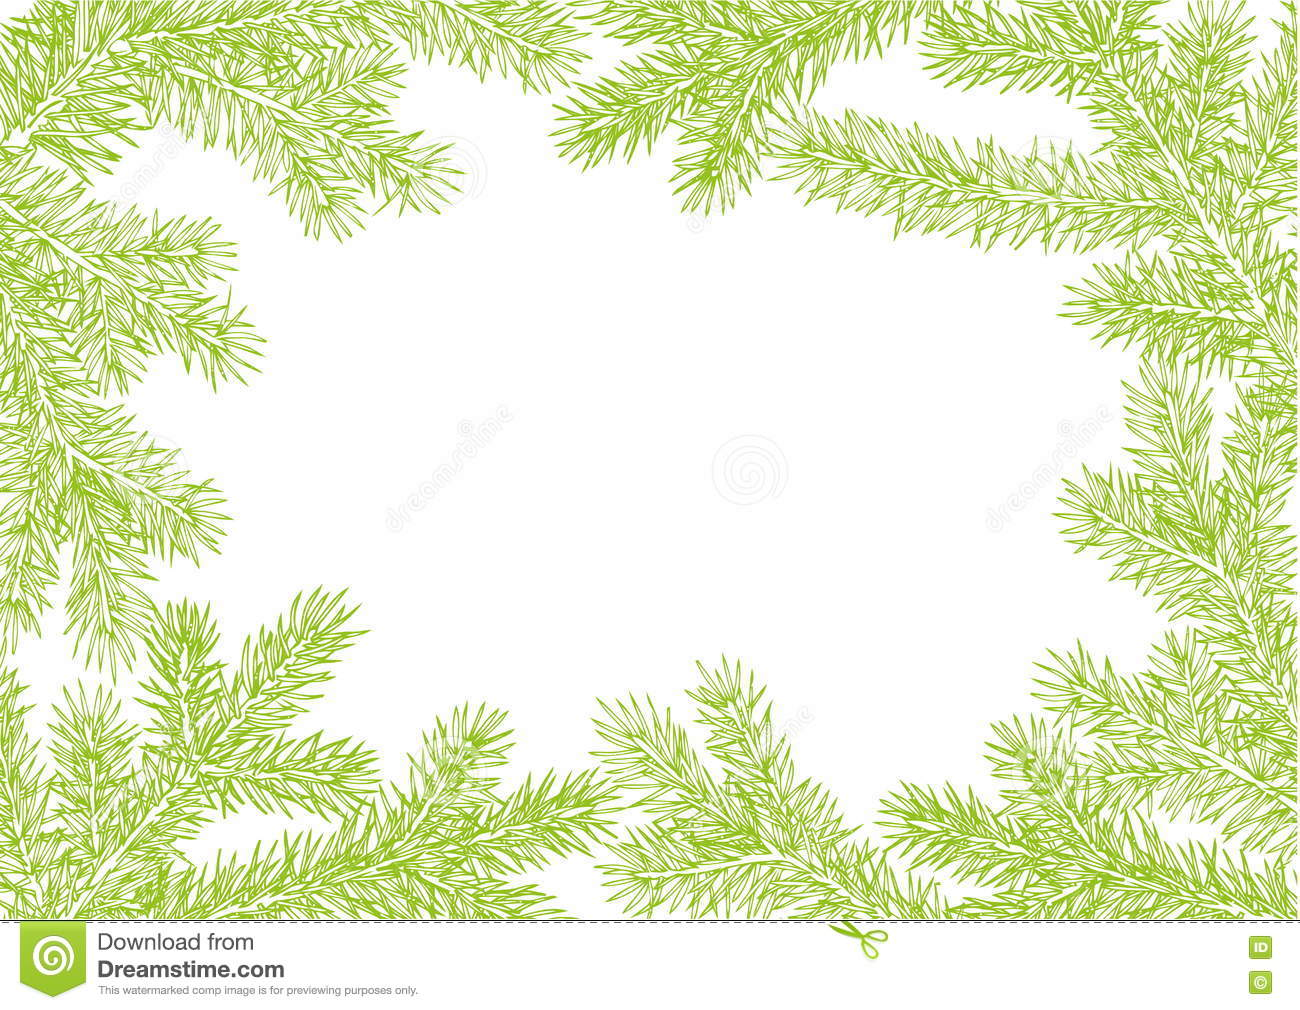 Background Made Of Fir Branches Vector Frame From